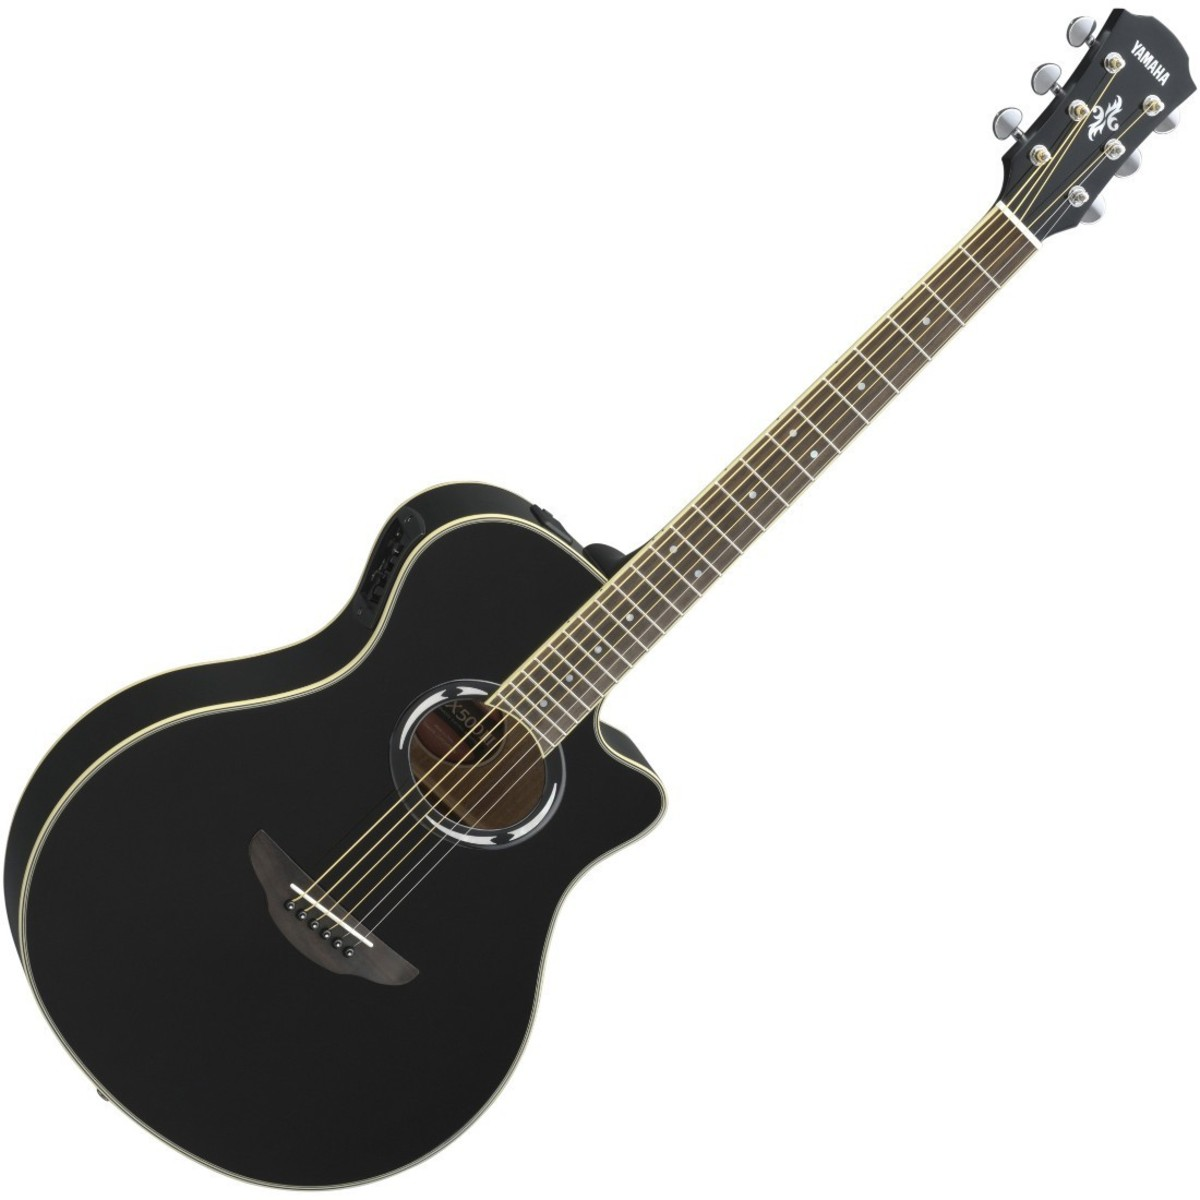 Yamaha apx500 iii electro acoustic guitar black at for Yamaha acoustic bass guitar